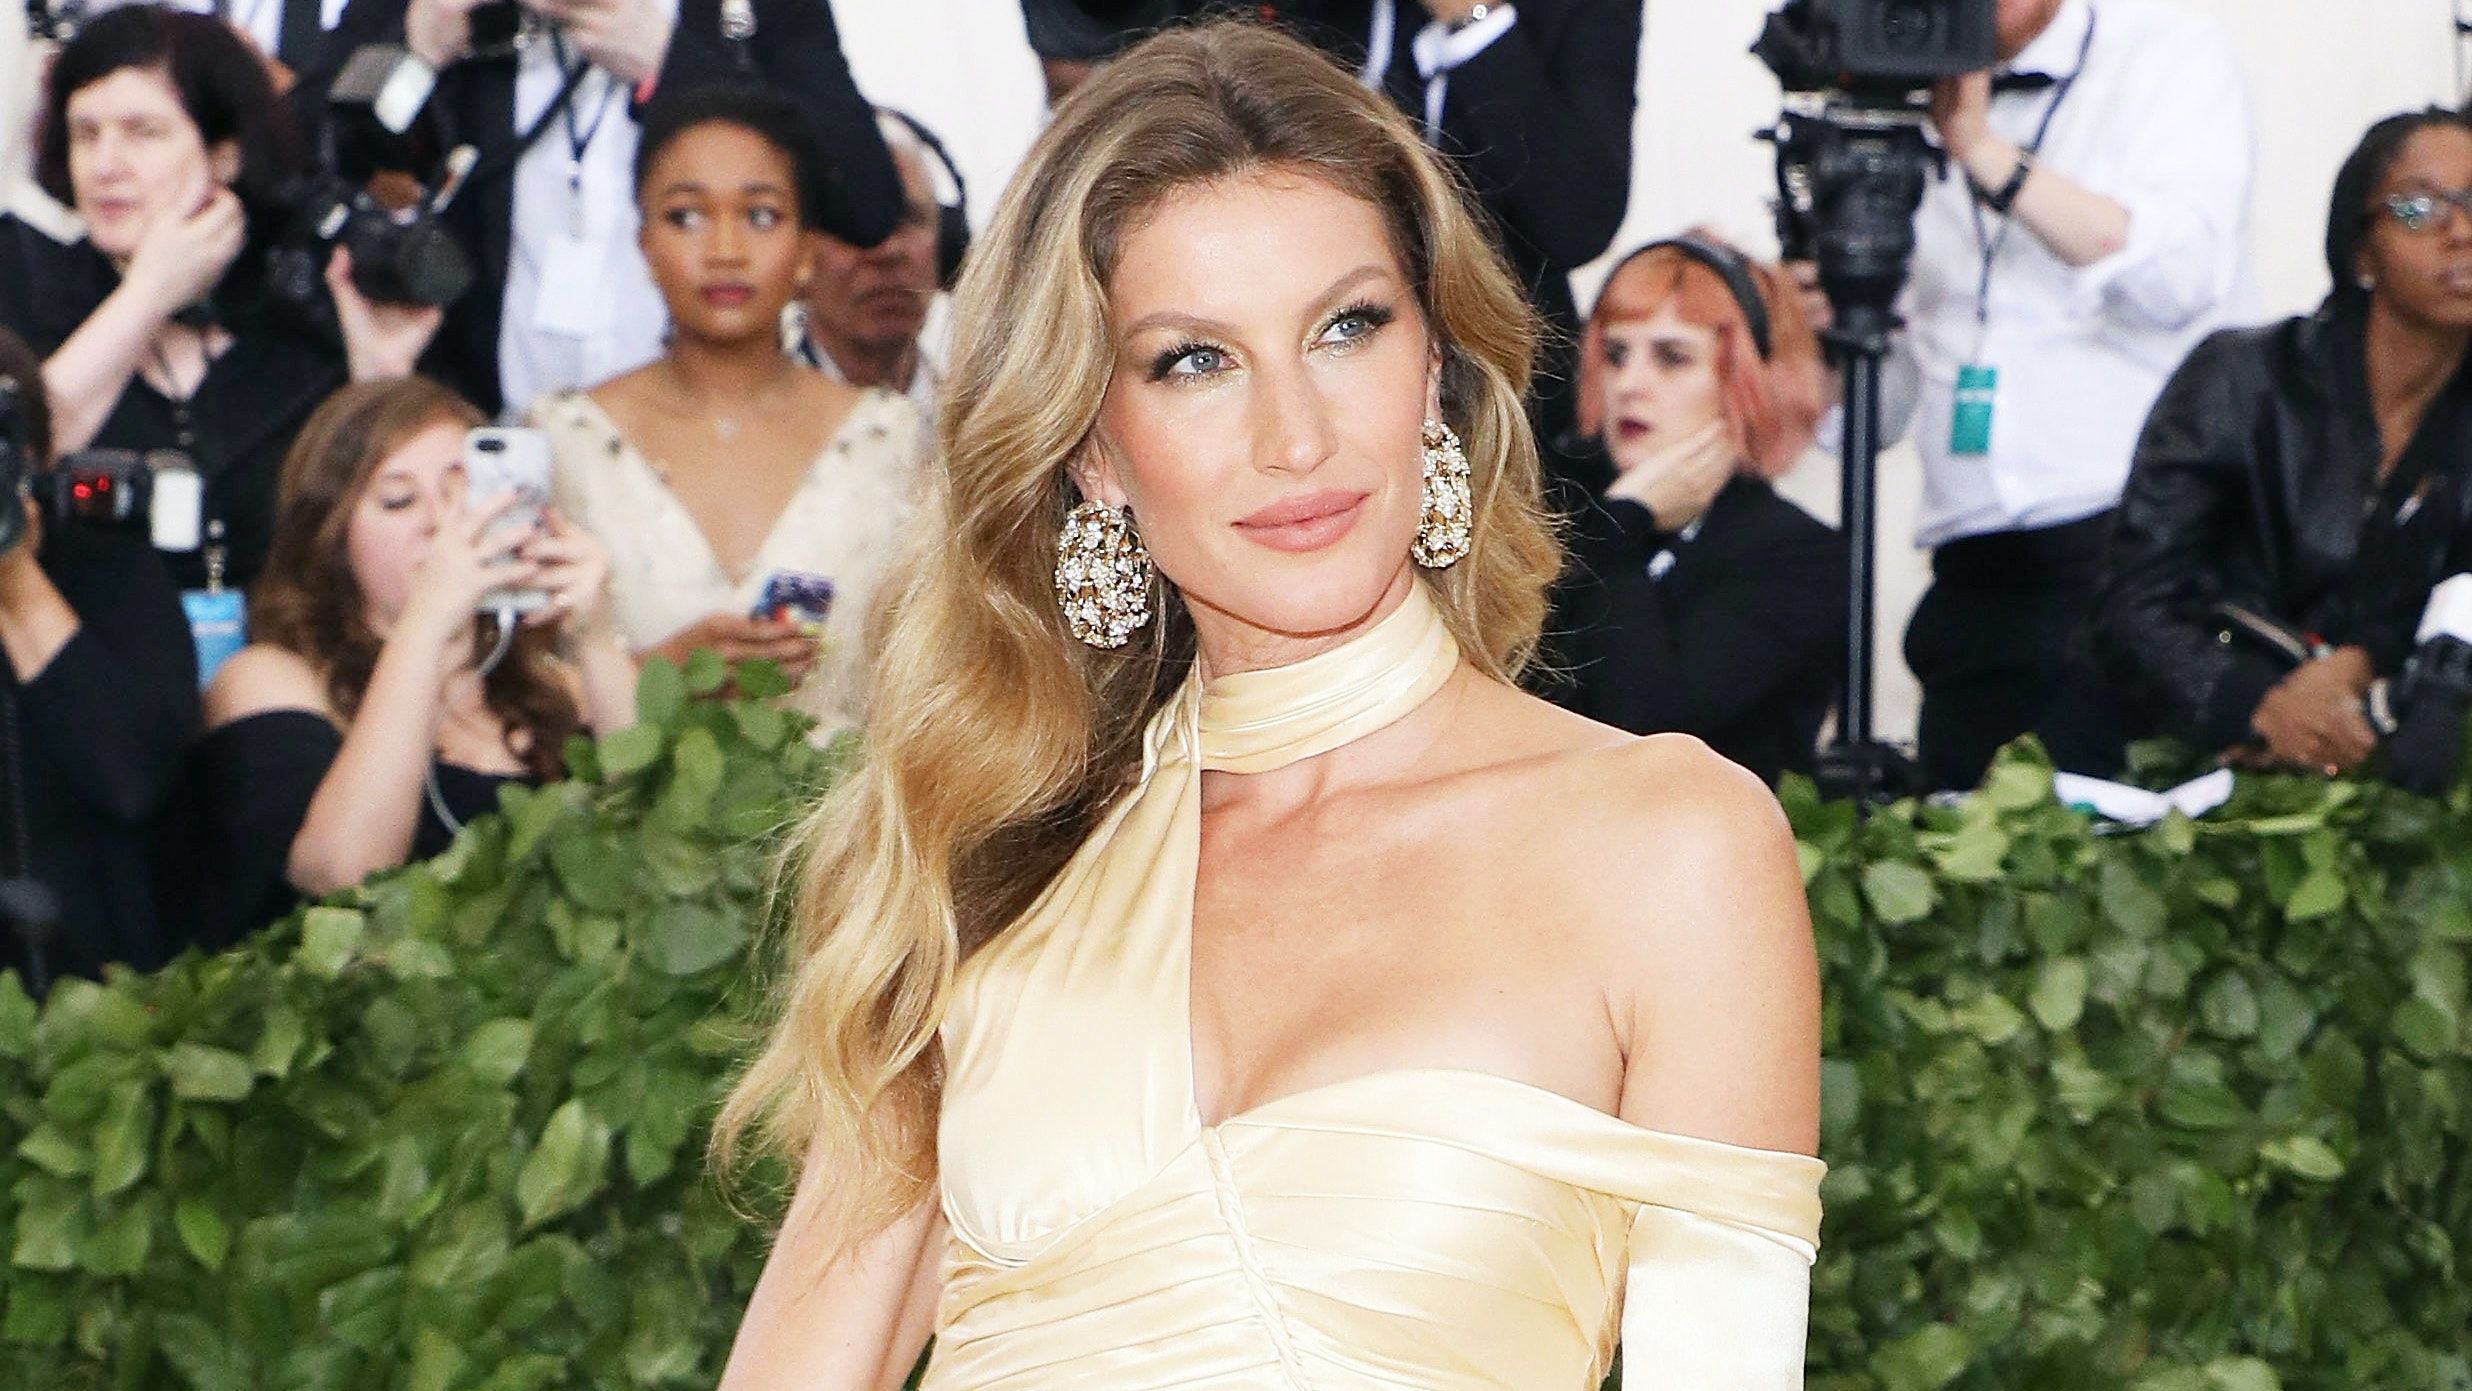 Glow Like Gisele Bündchen With These Expert-Approved Beauty Tips